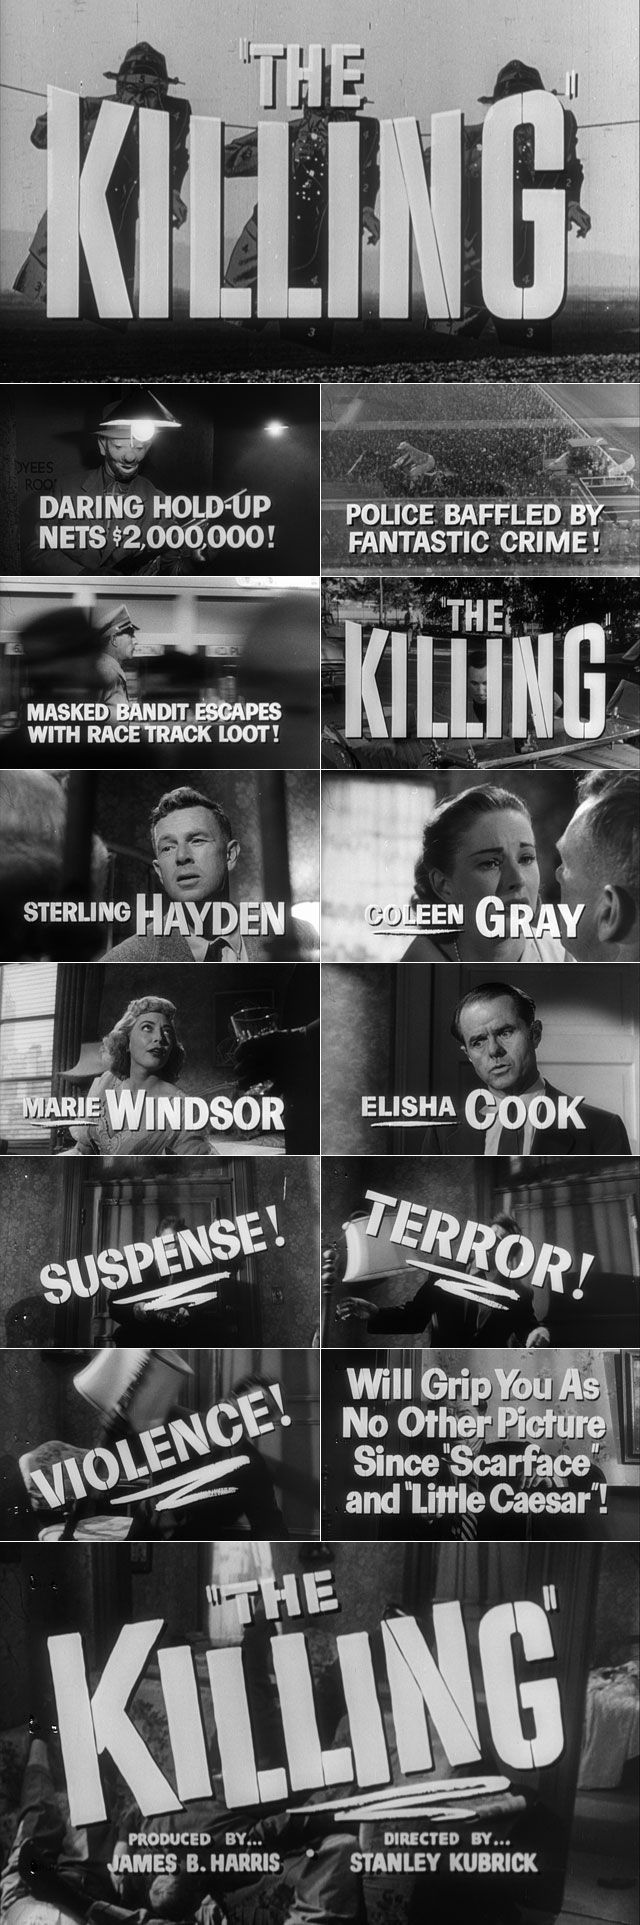 The Killing (1956) film noir movie trailer typography  #filmnoir #1950s #kubrick